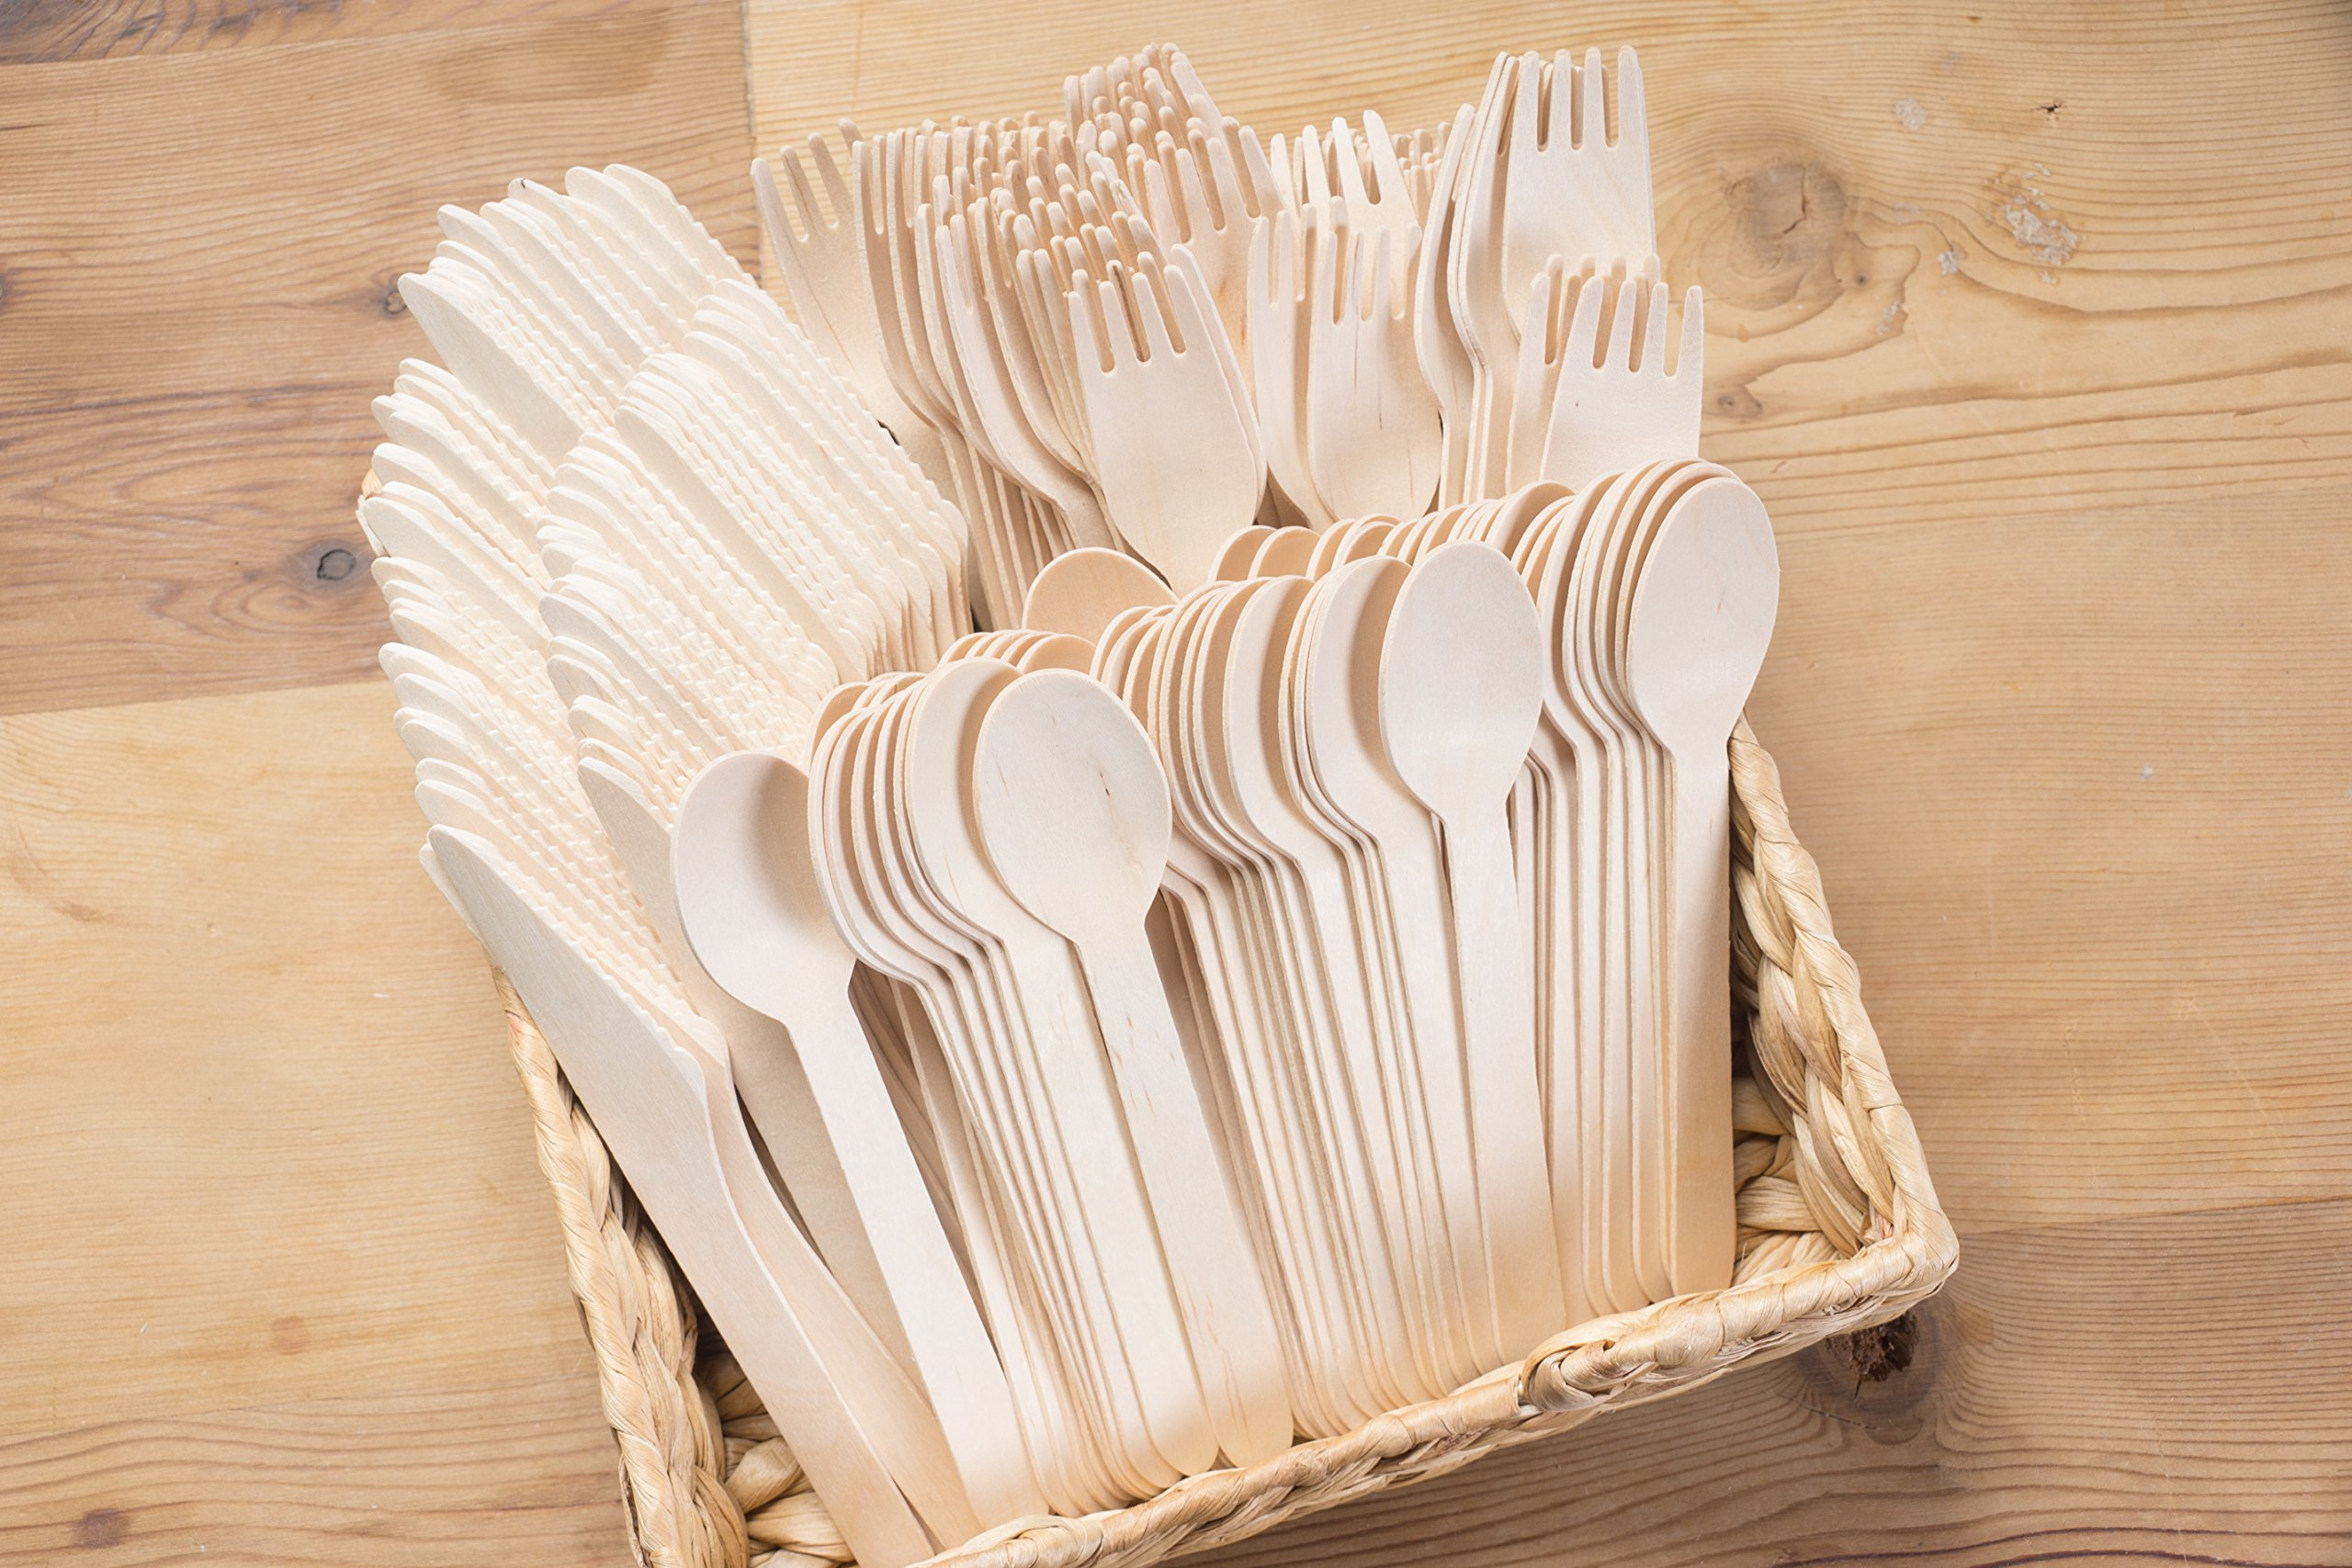 Juvale Disposable Cutlery - 400-Pack Wood Disposable Utensil Set, Knife, Fork Spoon Set, Biodegradable Eco-Friendly Natural Wood Party, Events, Holiday by Juvale (Image #1)